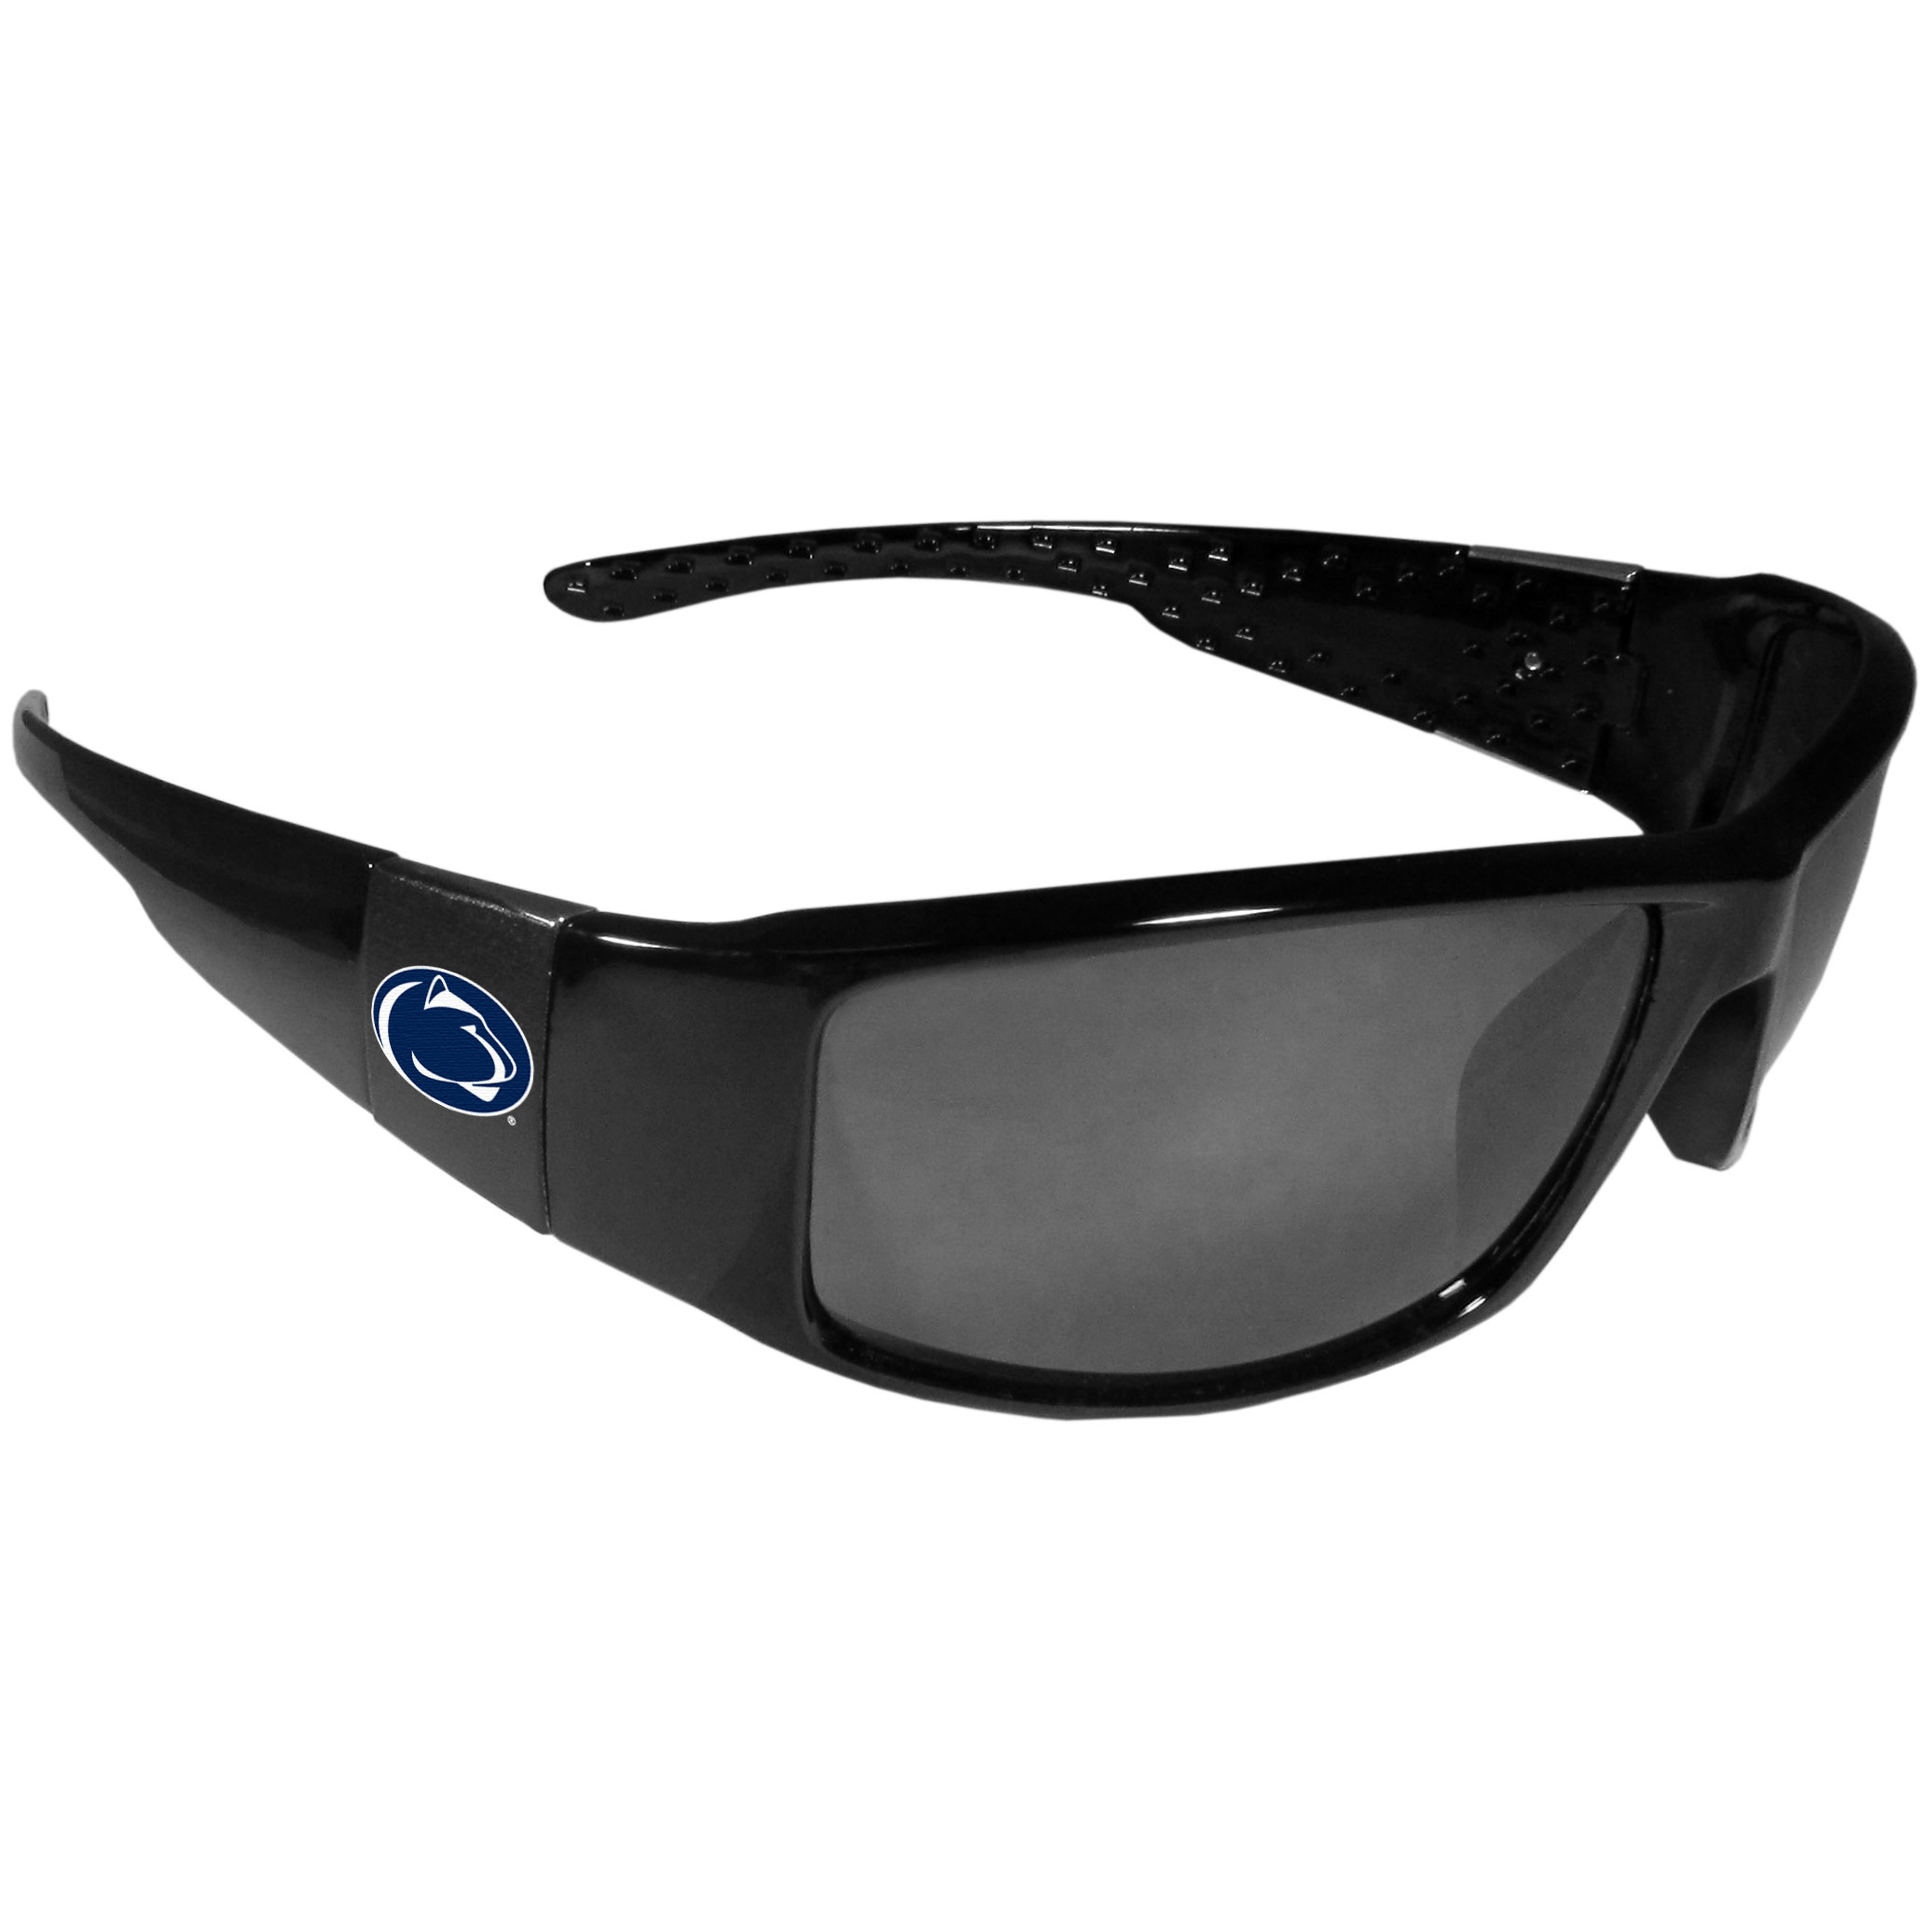 Penn St. Nittany Lions Black Wrap Sunglasses - These designer inspired frames have a sleek look in all black with  Penn St. Nittany Lions shields on each arm with a printed logo. The shades are perfect for any outdoor activity like; golfing, driving, hiking, fishing or cheering on the team at a tailgating event or at a home game day BBQ with a lens rating of 100% UVA/UVB for maximum UV protection. The high-quality frames are as durable as they are fashionable and with their classic look they are the perfect fan accessory that can be worn everyday for every occasion.